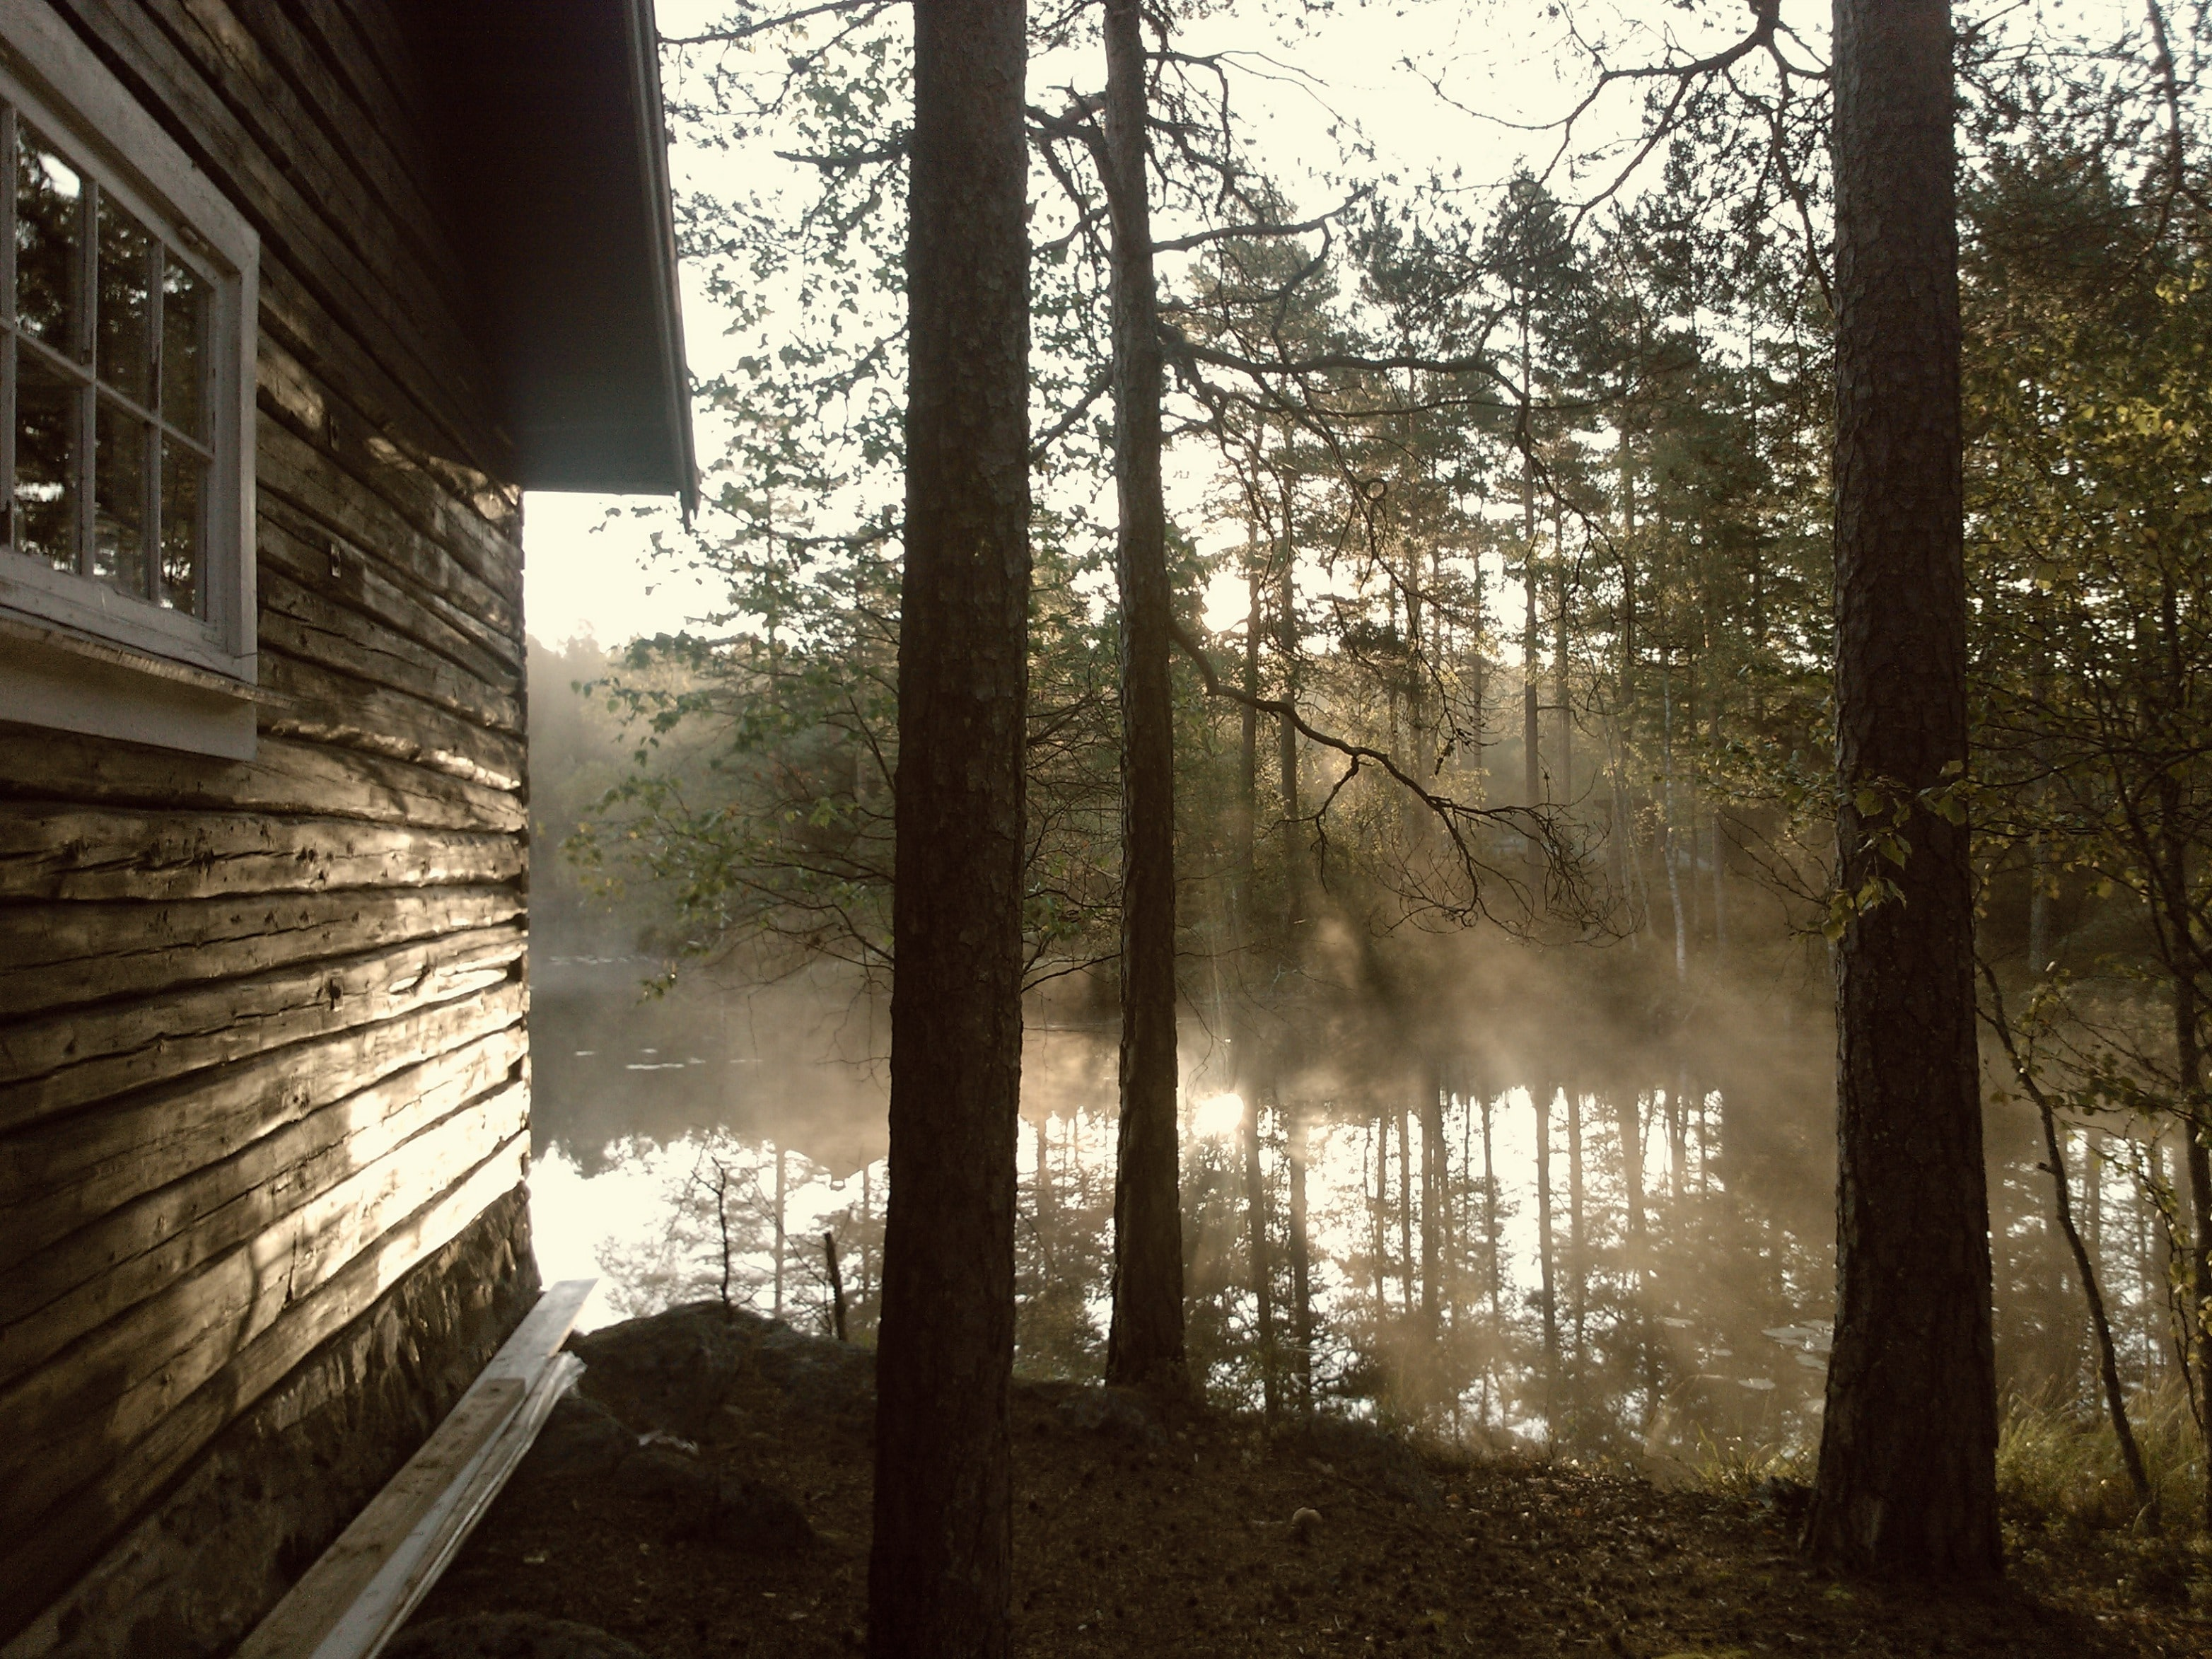 A cabin wall near a misty body of water with sunrays shining through the trees